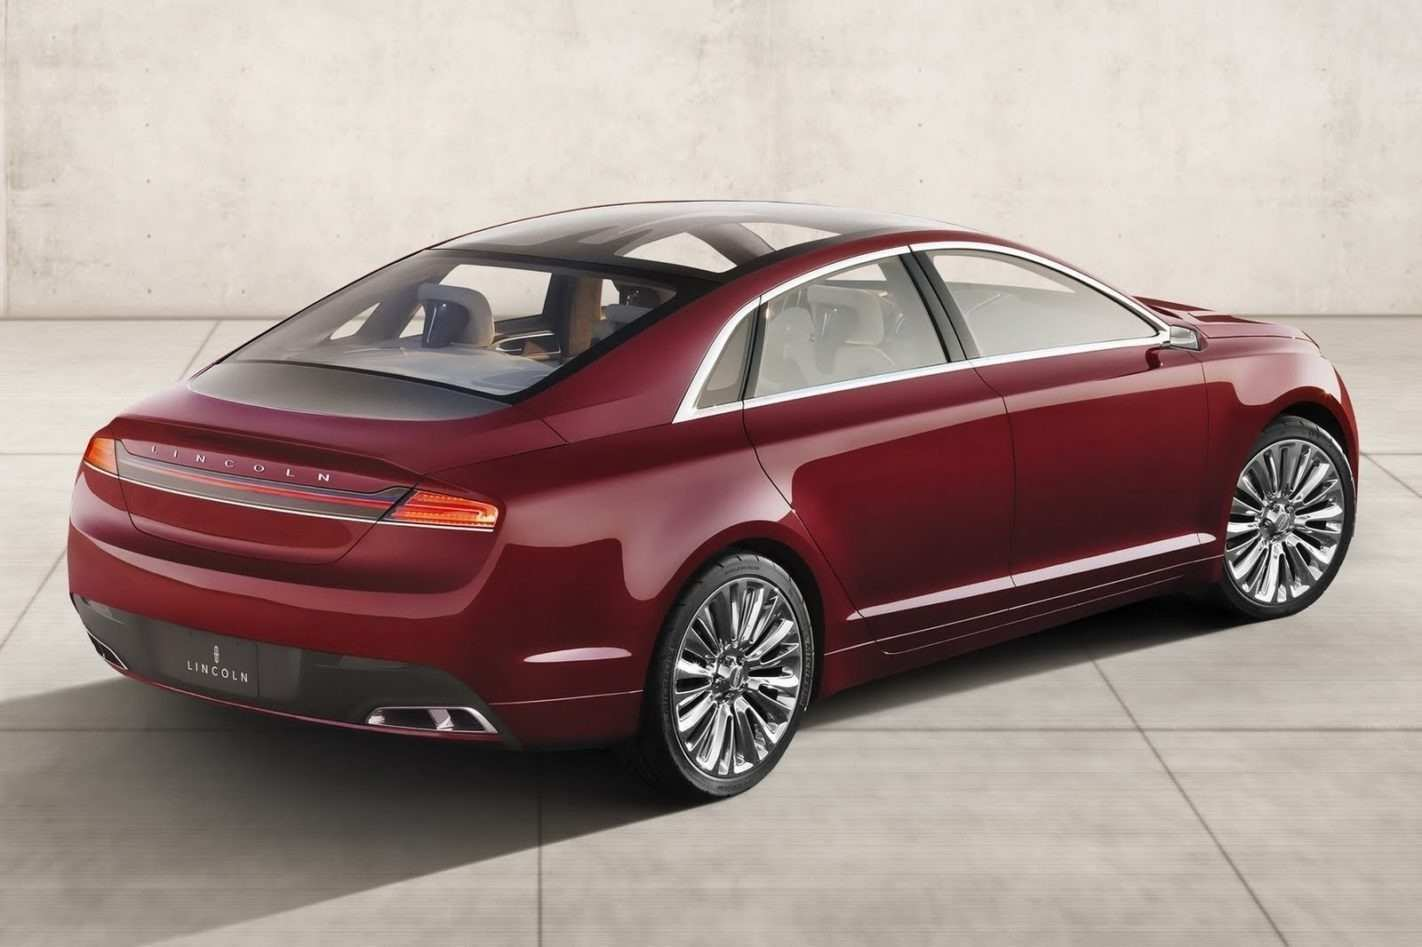 84 The Best 2019 Lincoln MKS Spy Photos Reviews